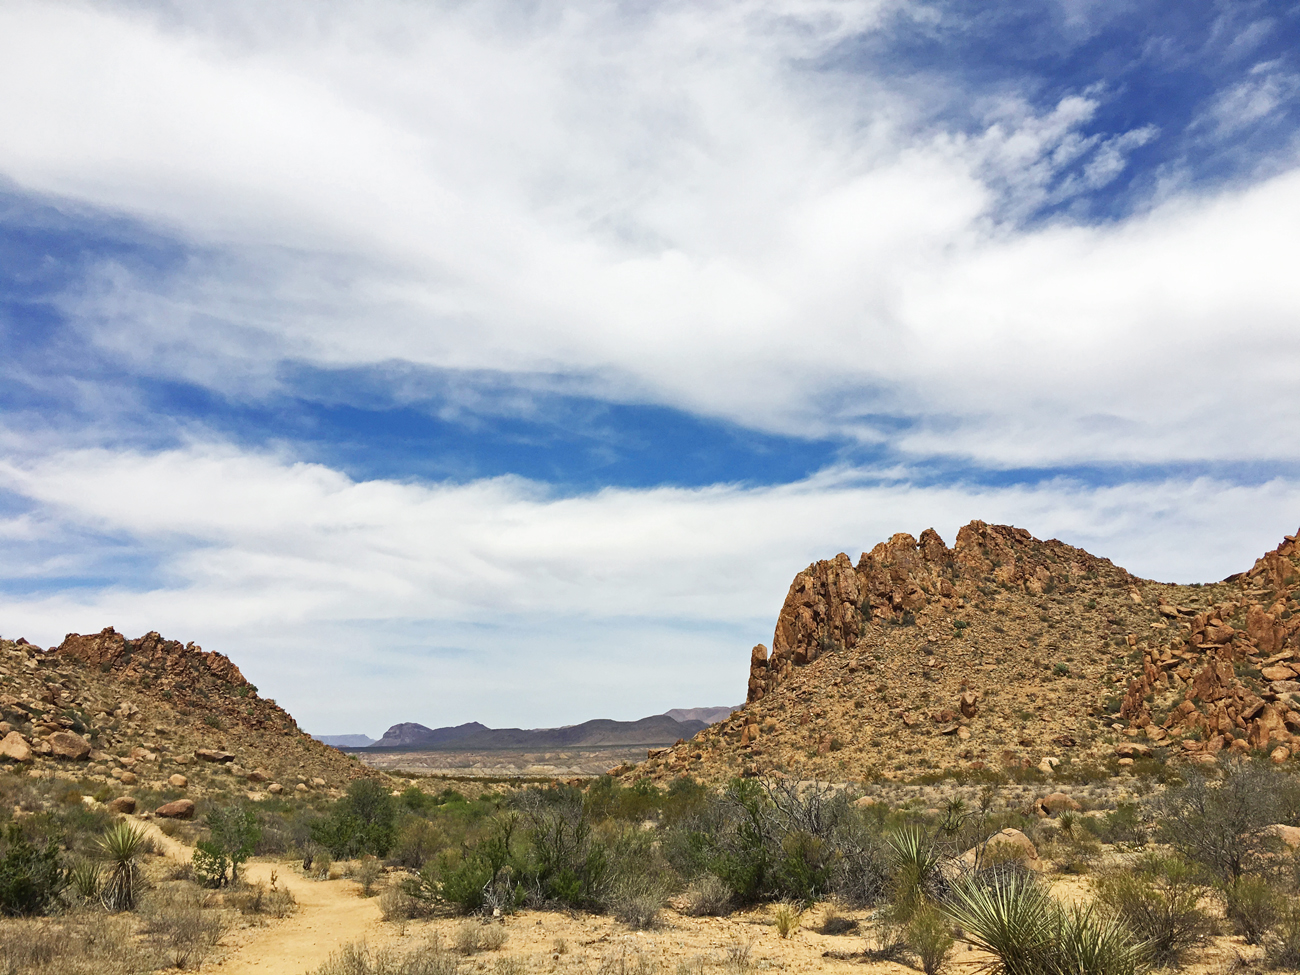 View of the lower portion of Grapevine Hills trail where it winds through a wide wash in Big Bend National Park